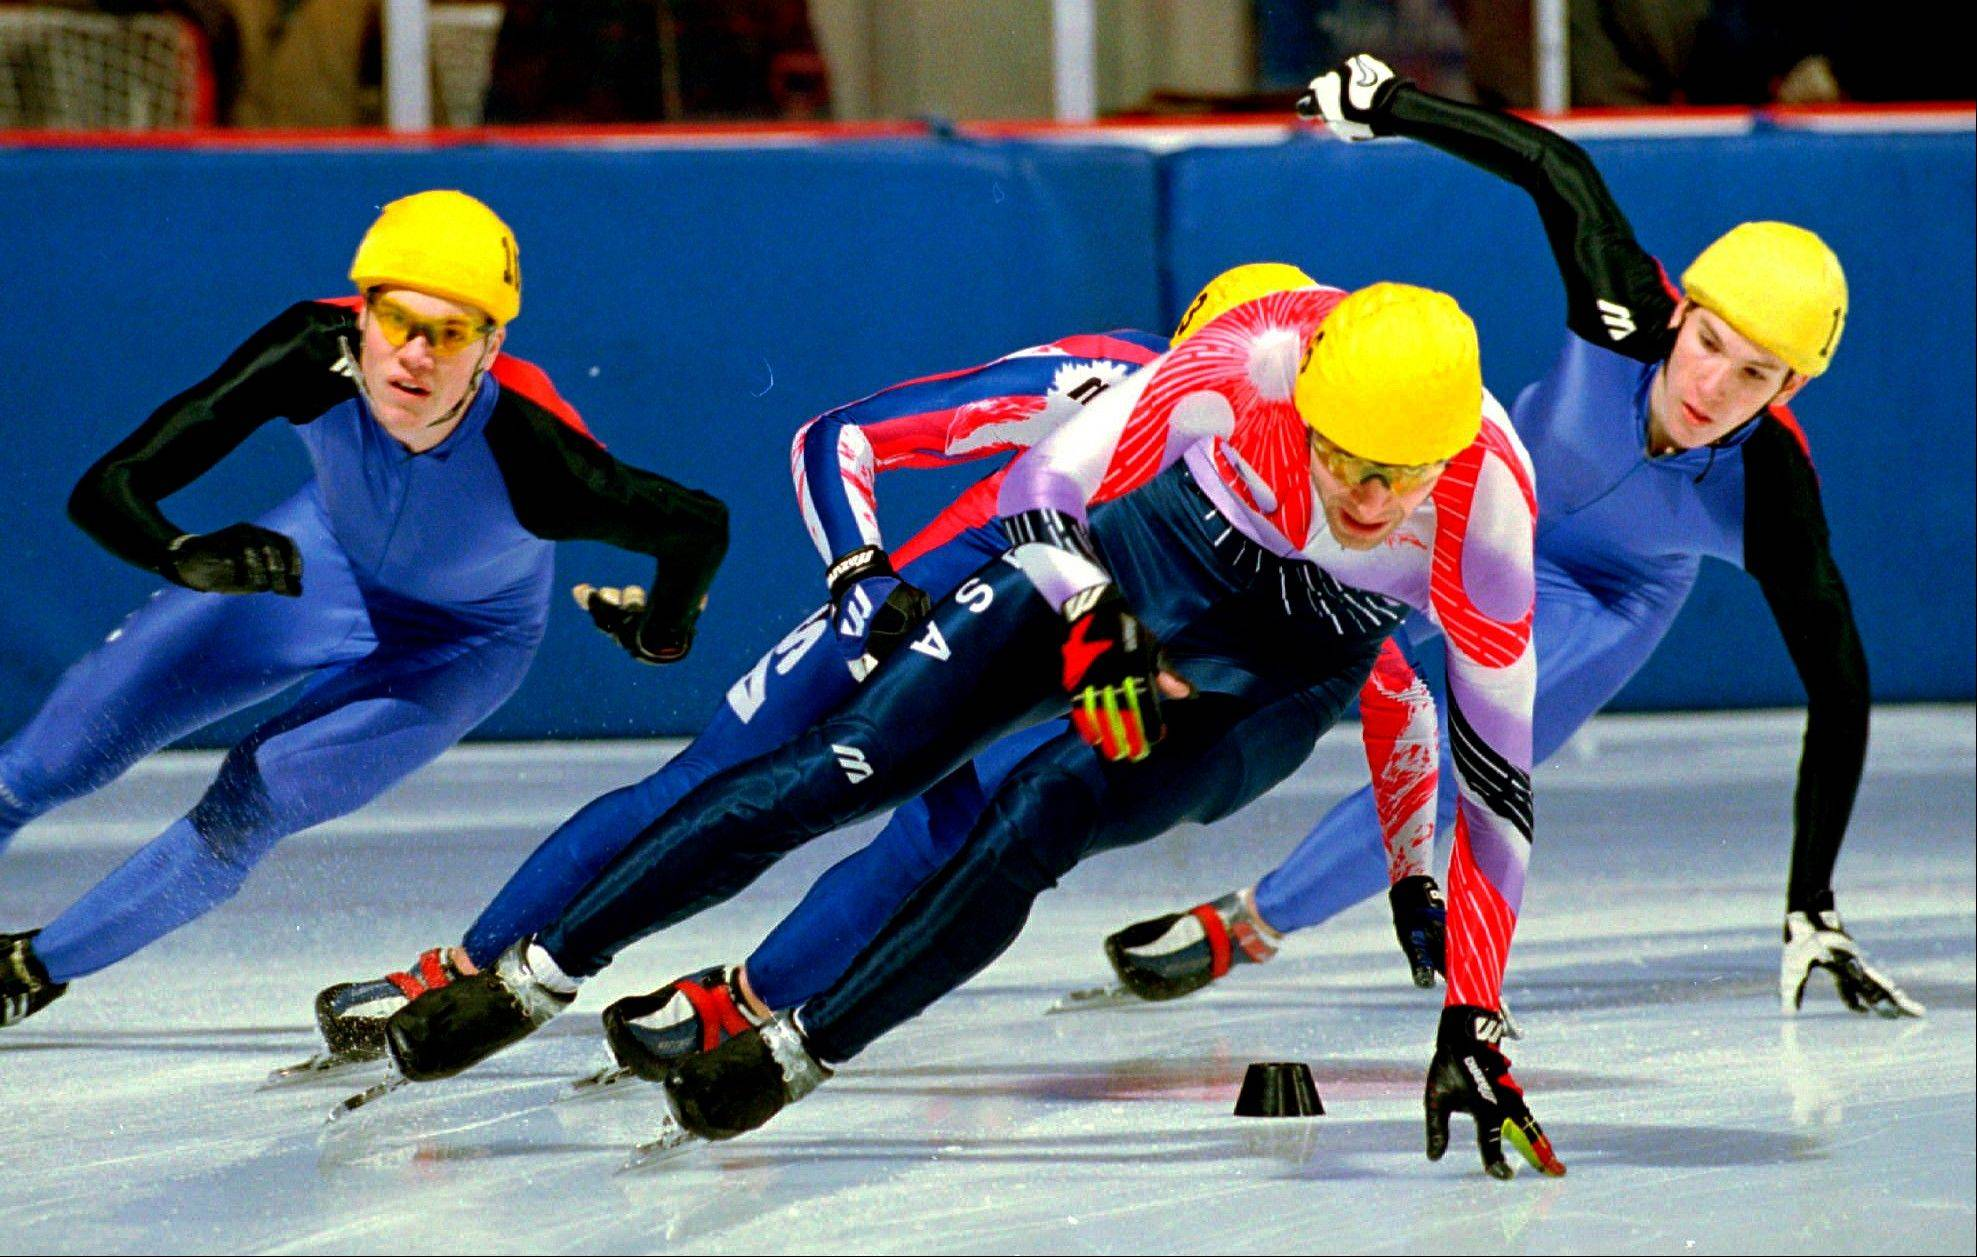 FILE - In this Jan. 18, 1998, file photo, Andy Gabel, foreground, skates to first place during the men's 1,000-meter short track speedskating Olympic trials in Lake Placid, N.Y. U.S. Speedskating began an investigation Friday, March 1, 2013, into the report of a female skater accusing former Olympian and organization president Andy Gabel of sexual abuse in the 1990s.